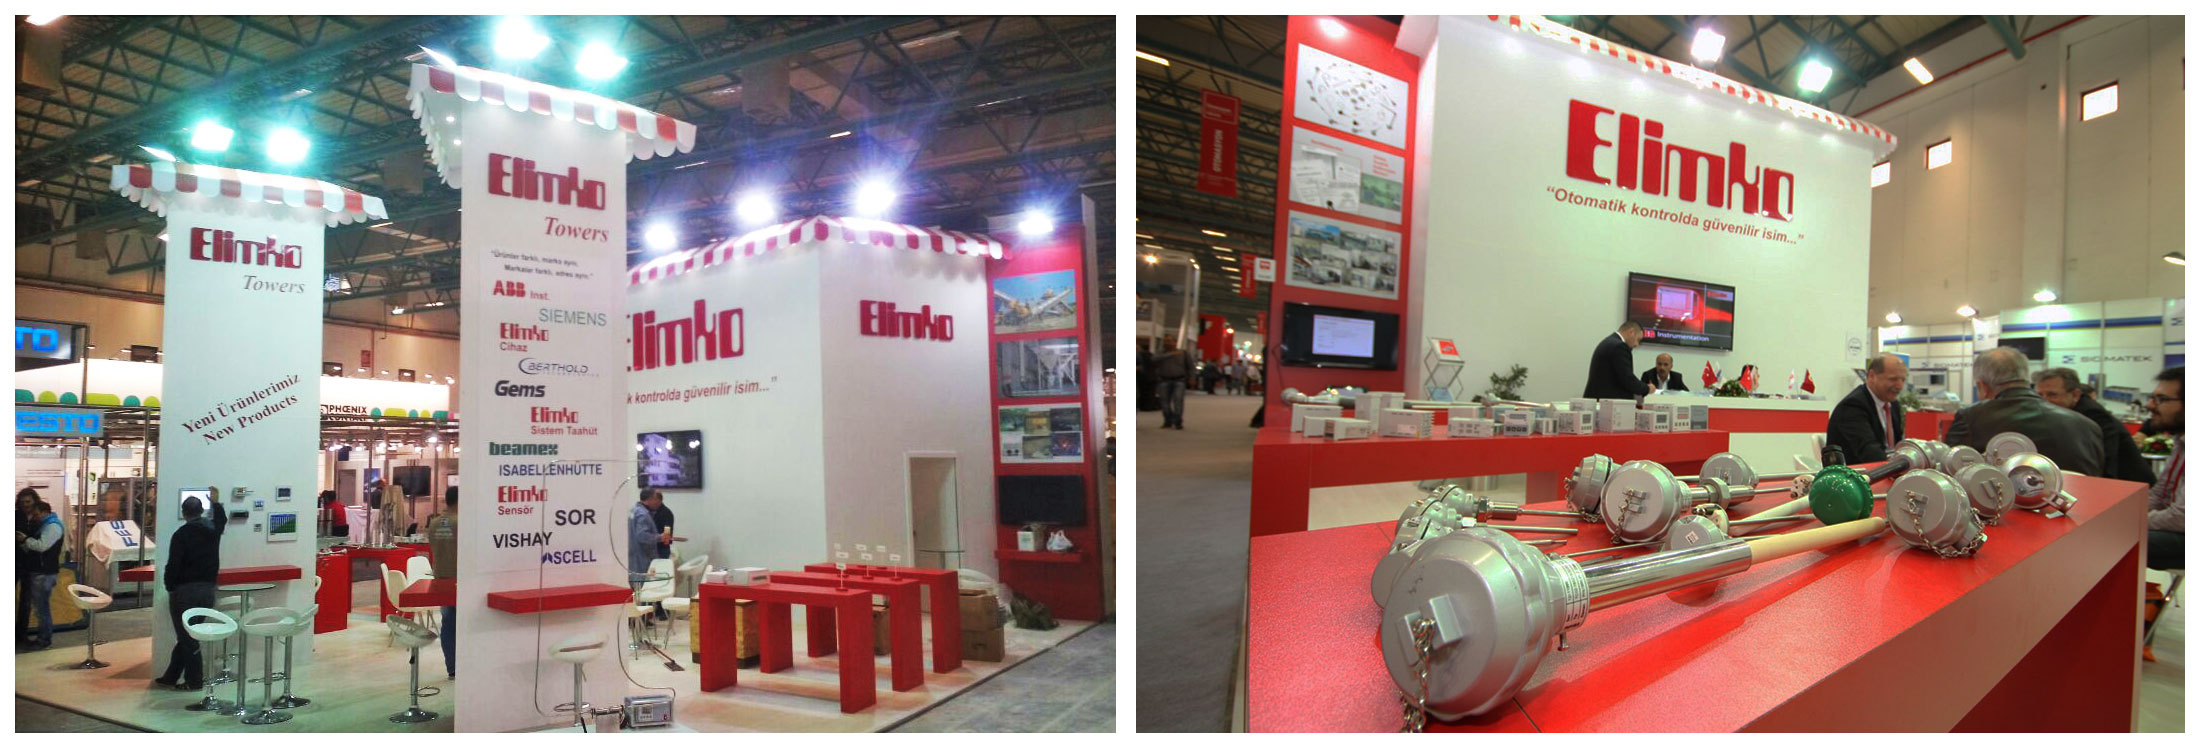 Exhibition Stand Etiquette : Elimko exhibition stand design photo by griofismimarlik on